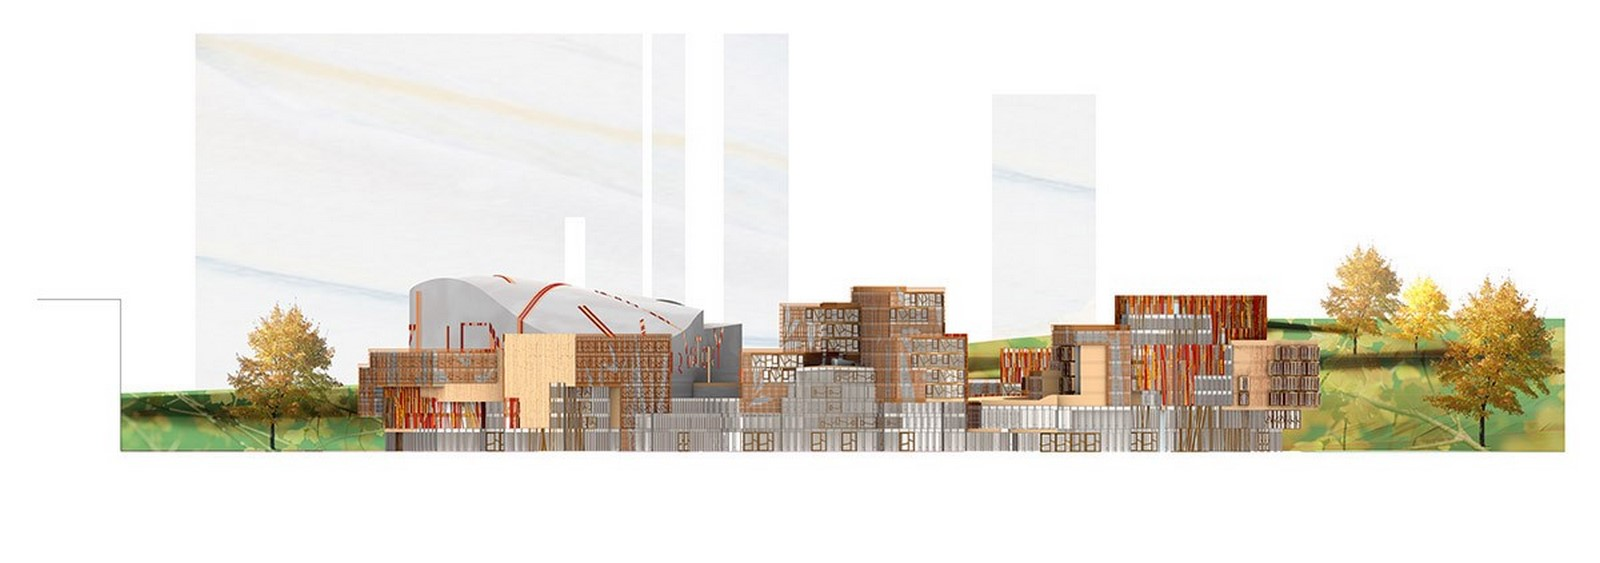 Competition to Design Shenzhen's Conservatory of Music won by Miralles Tagliabue EMBT - Sheet11